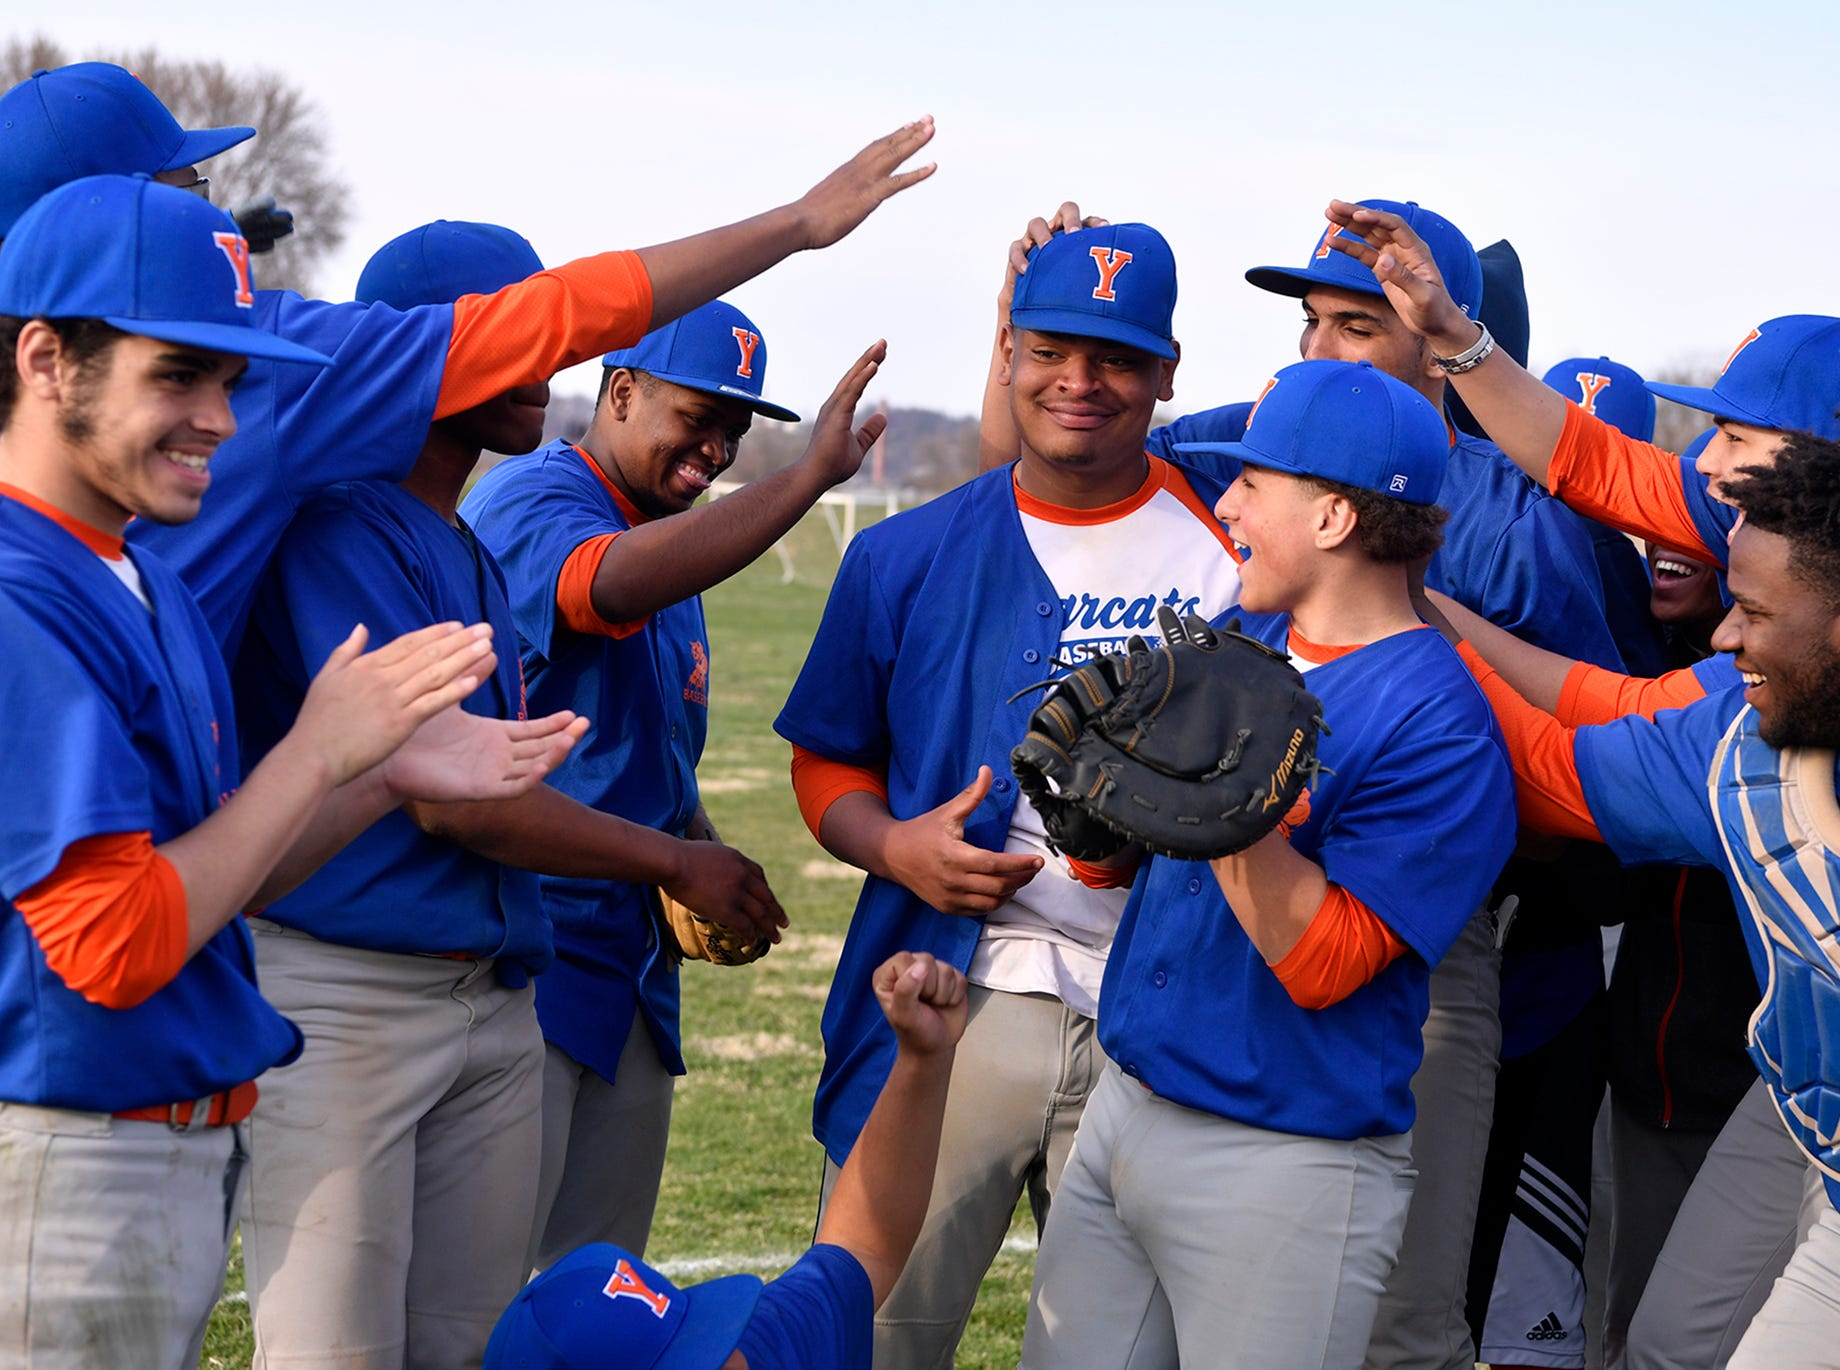 The Bearcats congratulates pitcher Joseph Garabito Torres after he was presented with the game ball after York High defeated Hanover, Thursday, April 4, 2019. This was the Bearcats first baseball win since 2012. John A. Pavoncello photo